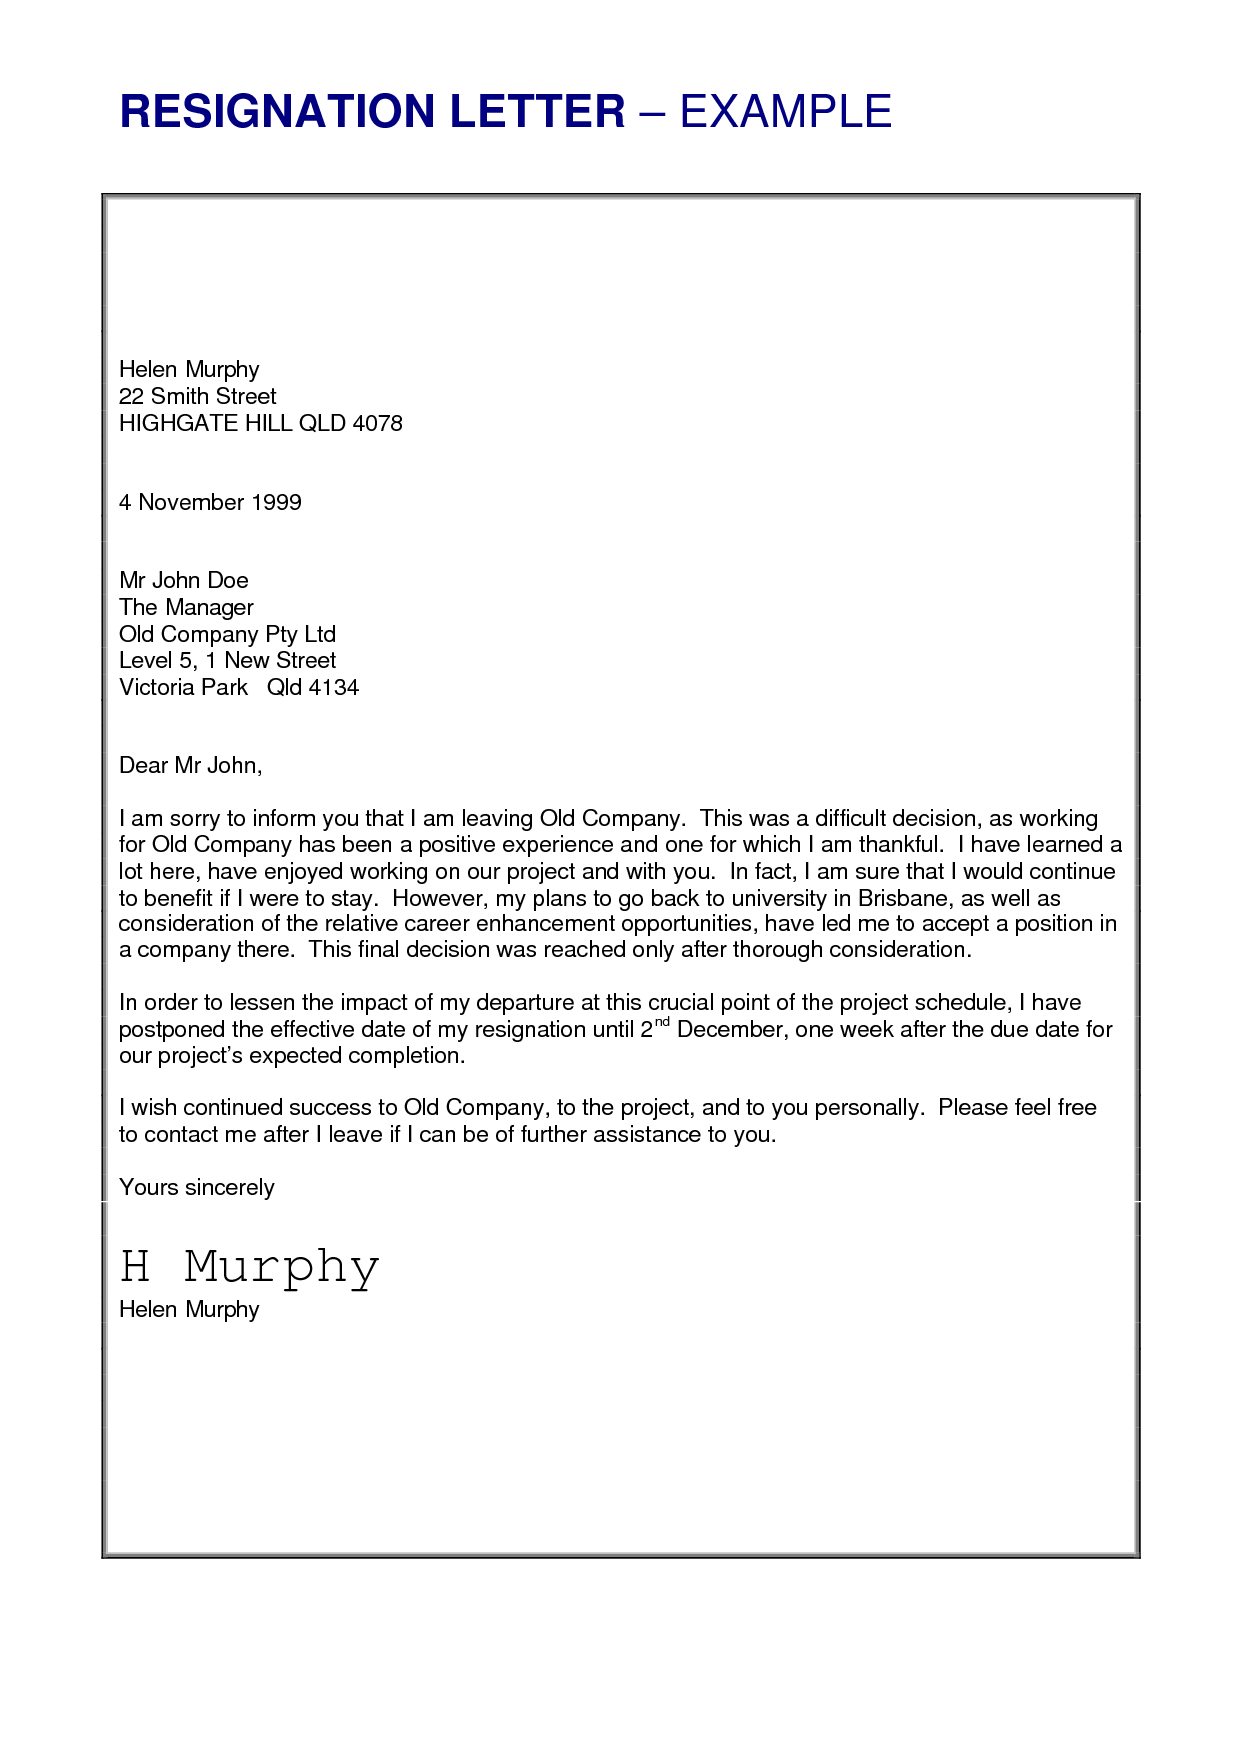 Job resignation letter sample loganun blog best letter job resignation letter sample loganun blog altavistaventures